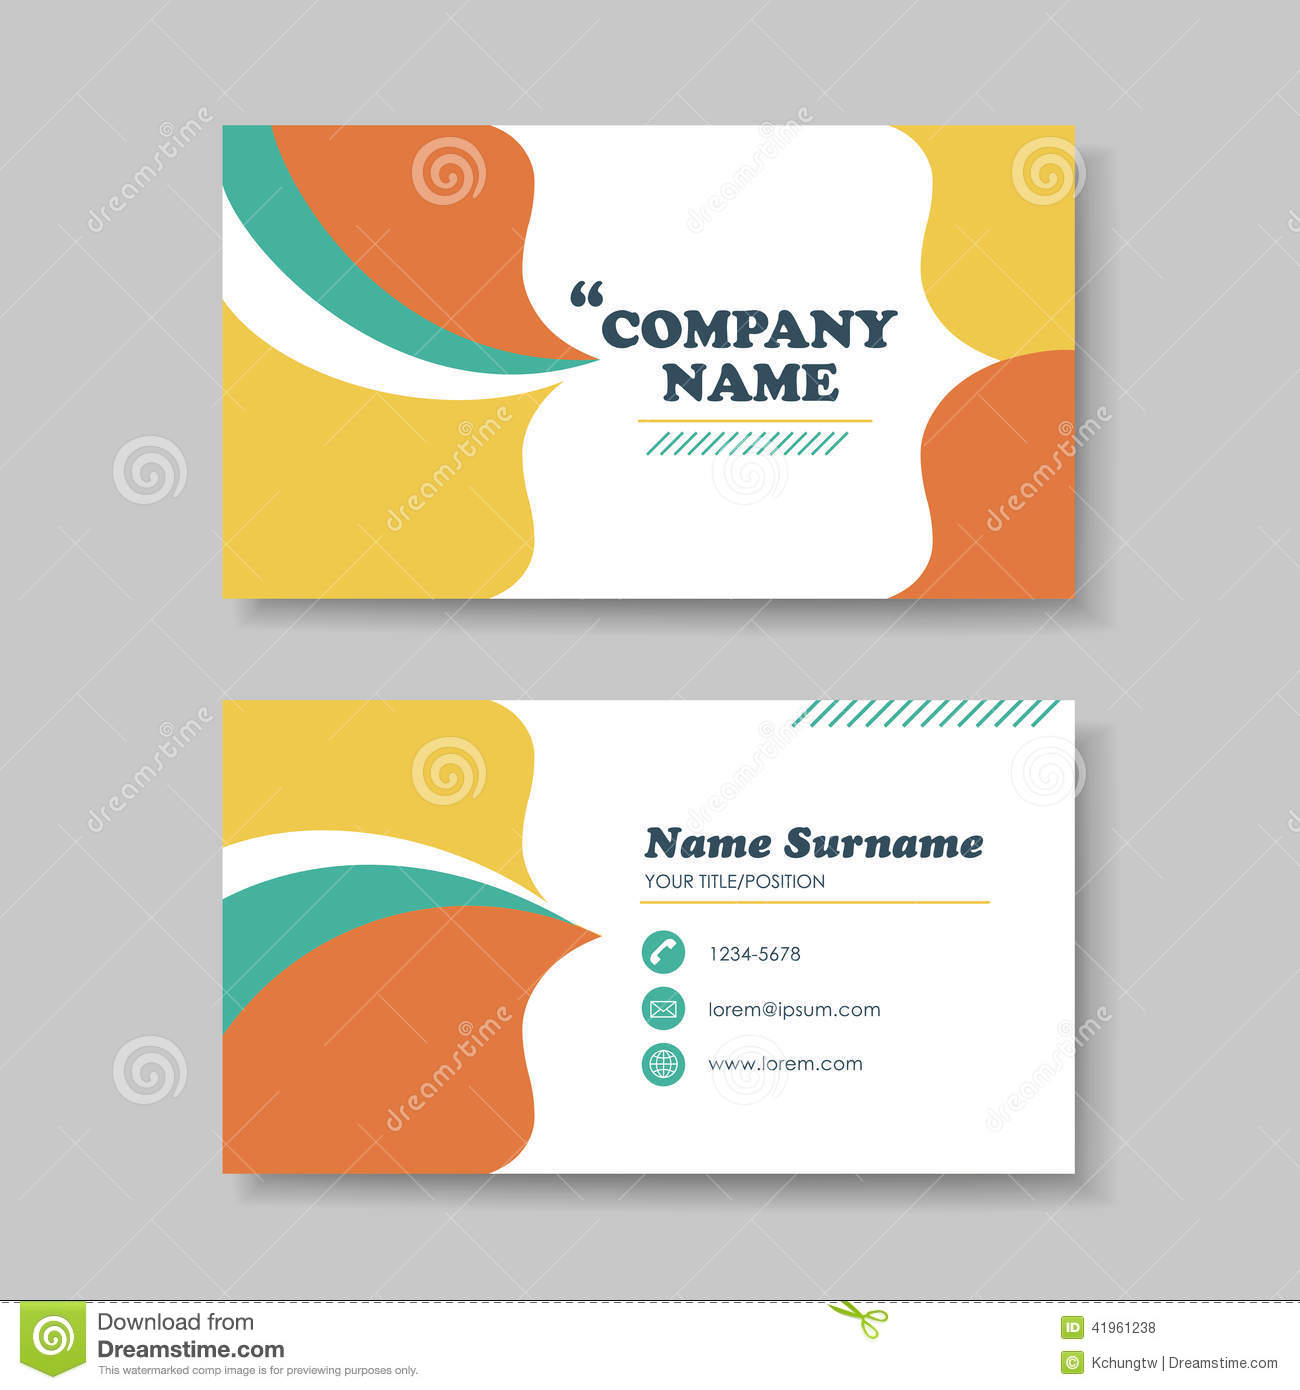 Free vector business card templates business card design for Free design templates